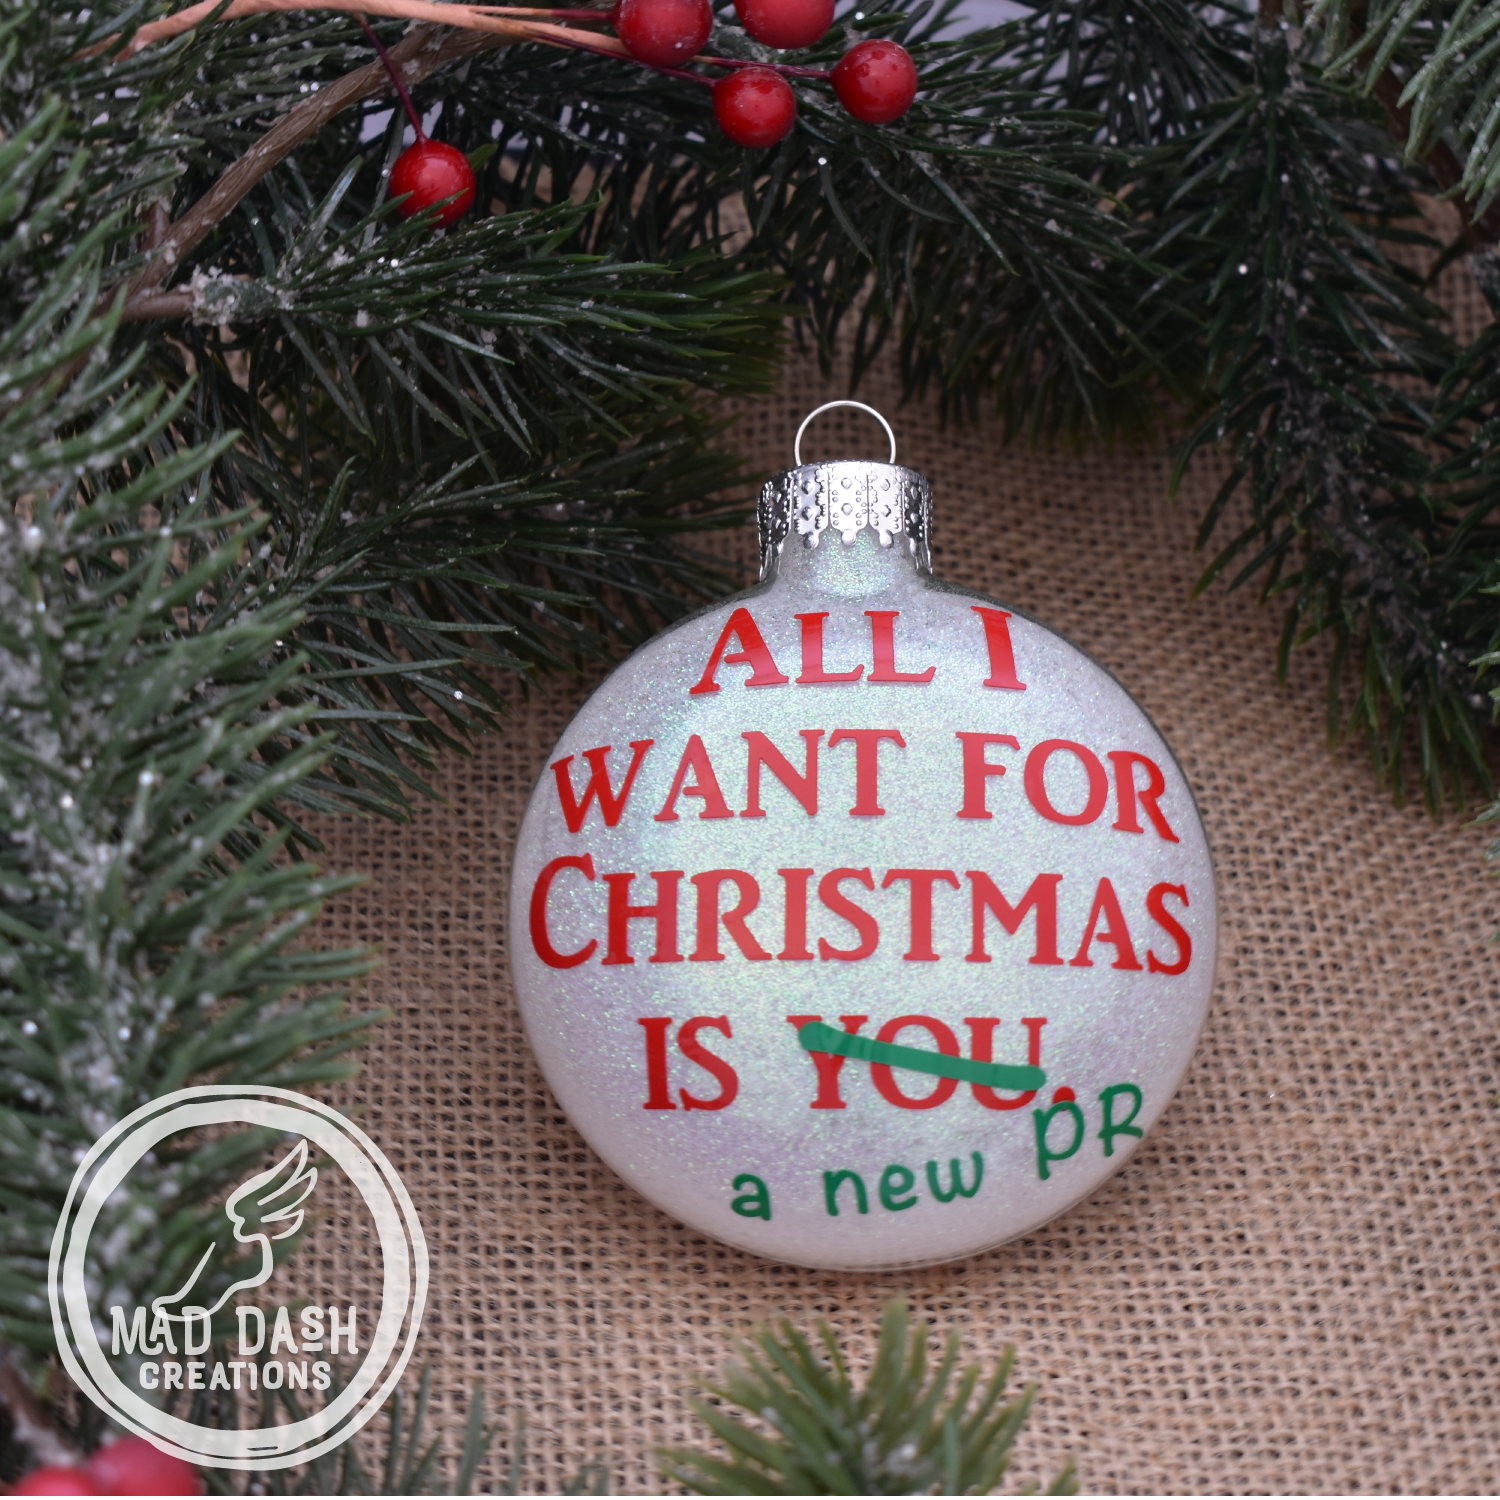 Mad Dash Creations All I want for Christmas is a New PR Ornament